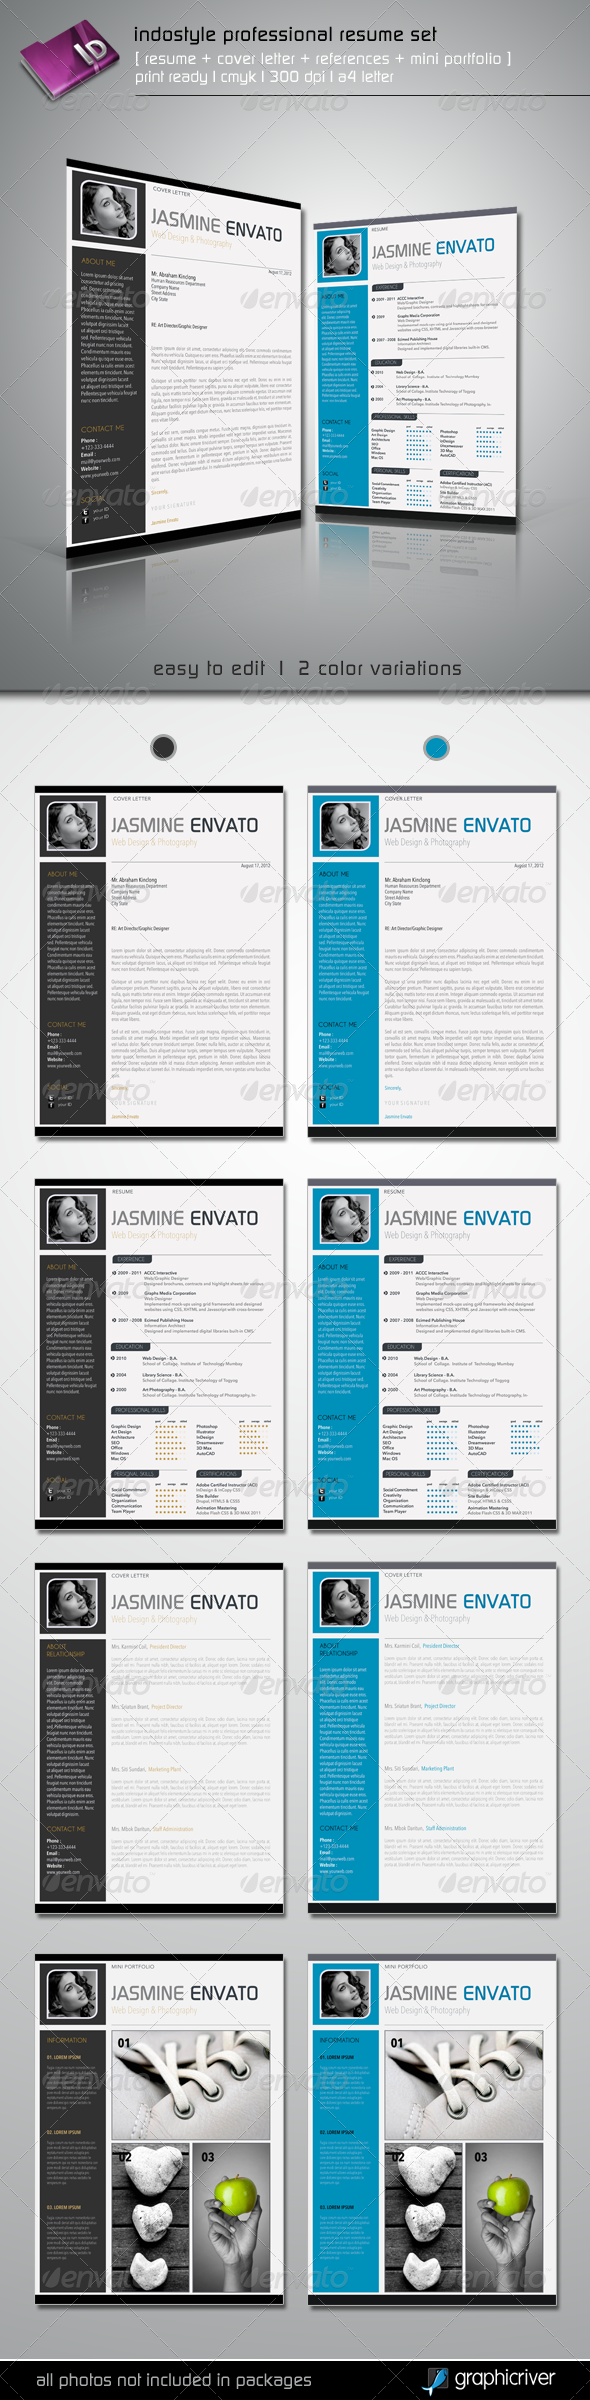 GraphicRiver Indostyle Professional Resume Set 2723242